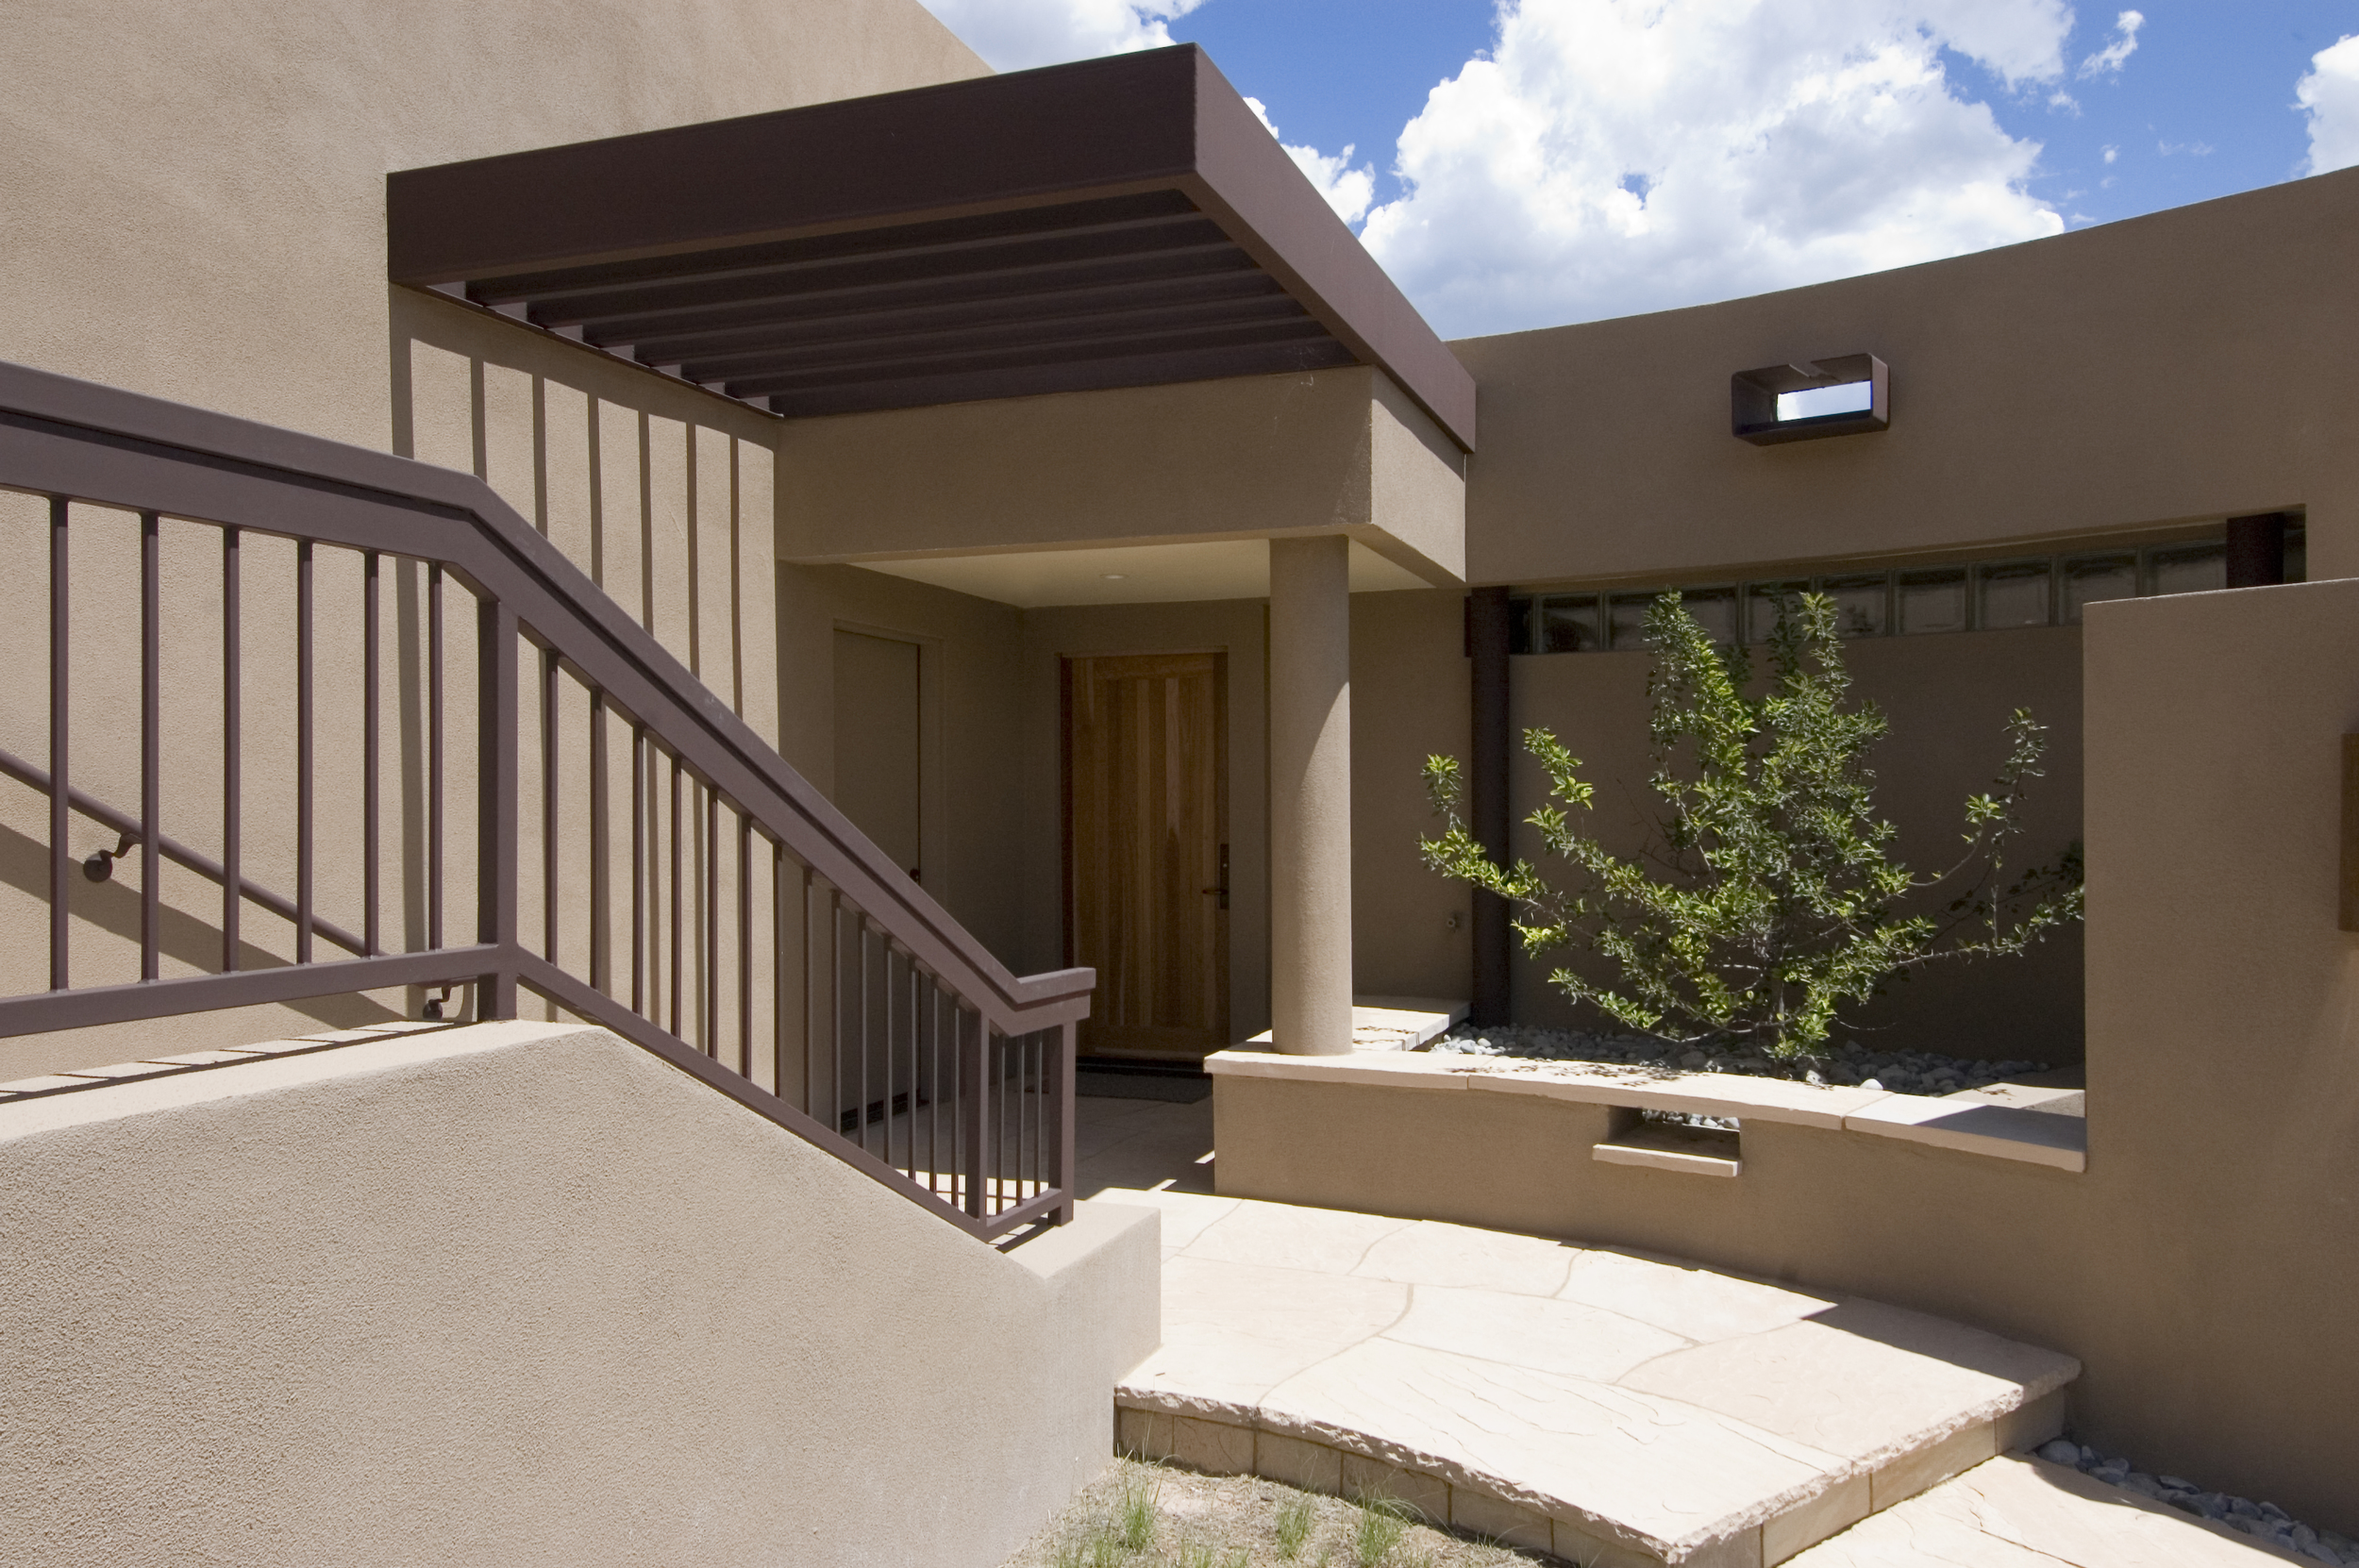 12 Entrance with Rainwater Catchment (1).jpg